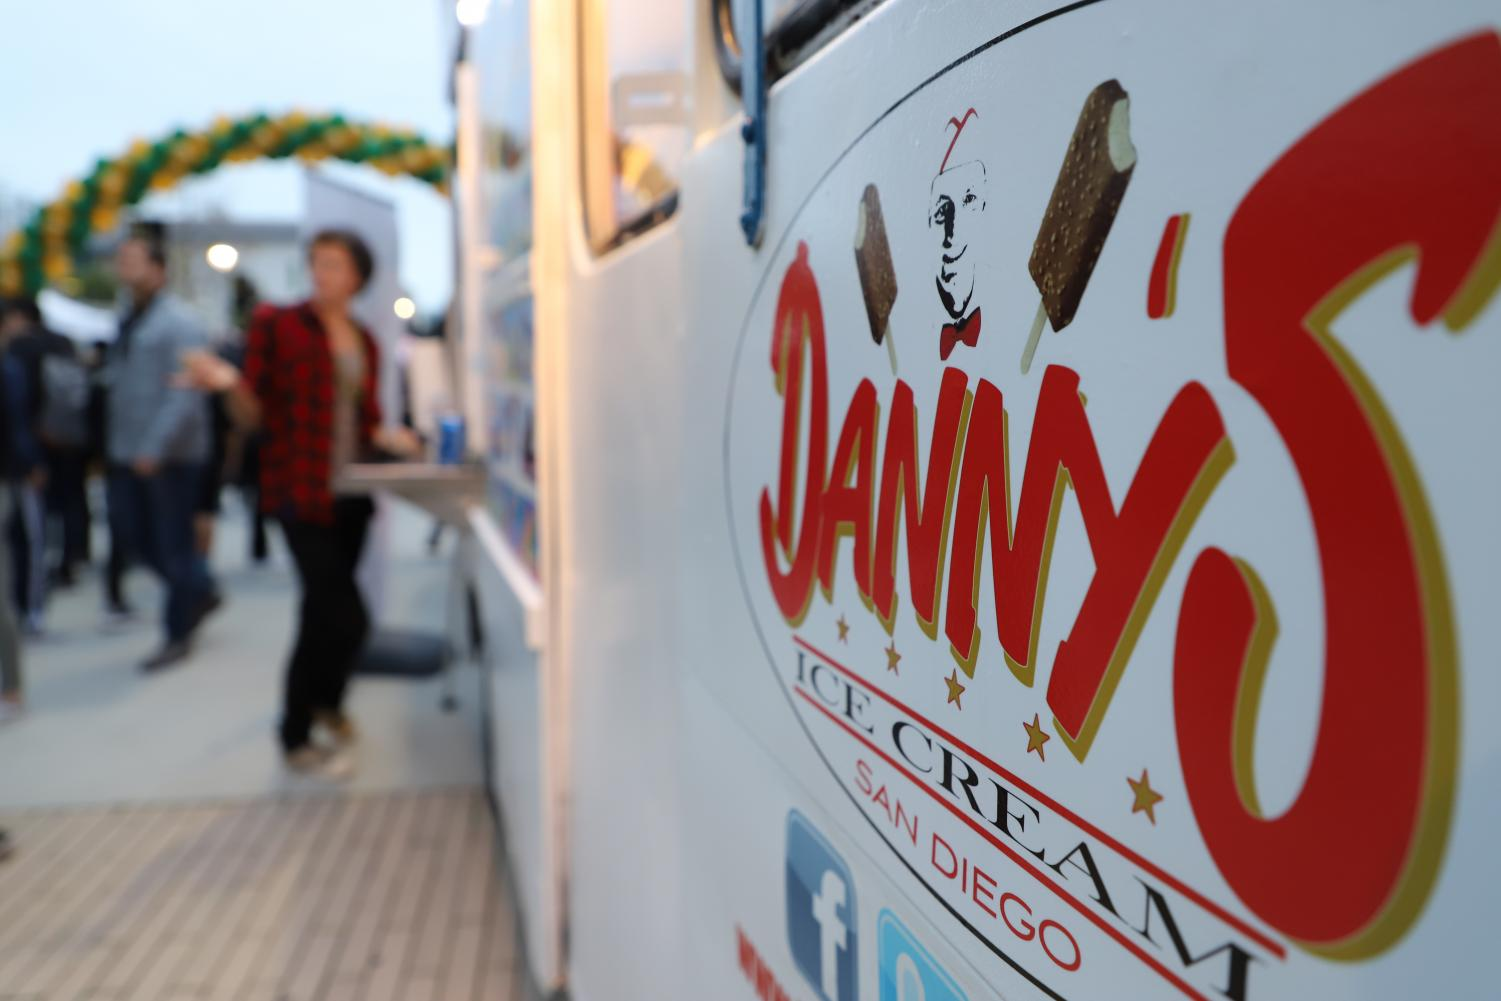 Students+line+up+to+get+a+tasty+treat+from+Danny%E2%80%99s+Ice+Cream+Truck.+The+Hoopcoming+Carnival+was+packed+with+food+trucks+and+stands+filled+with+a+variety+of+food+for+everyone%E2%80%99s+cravings.+